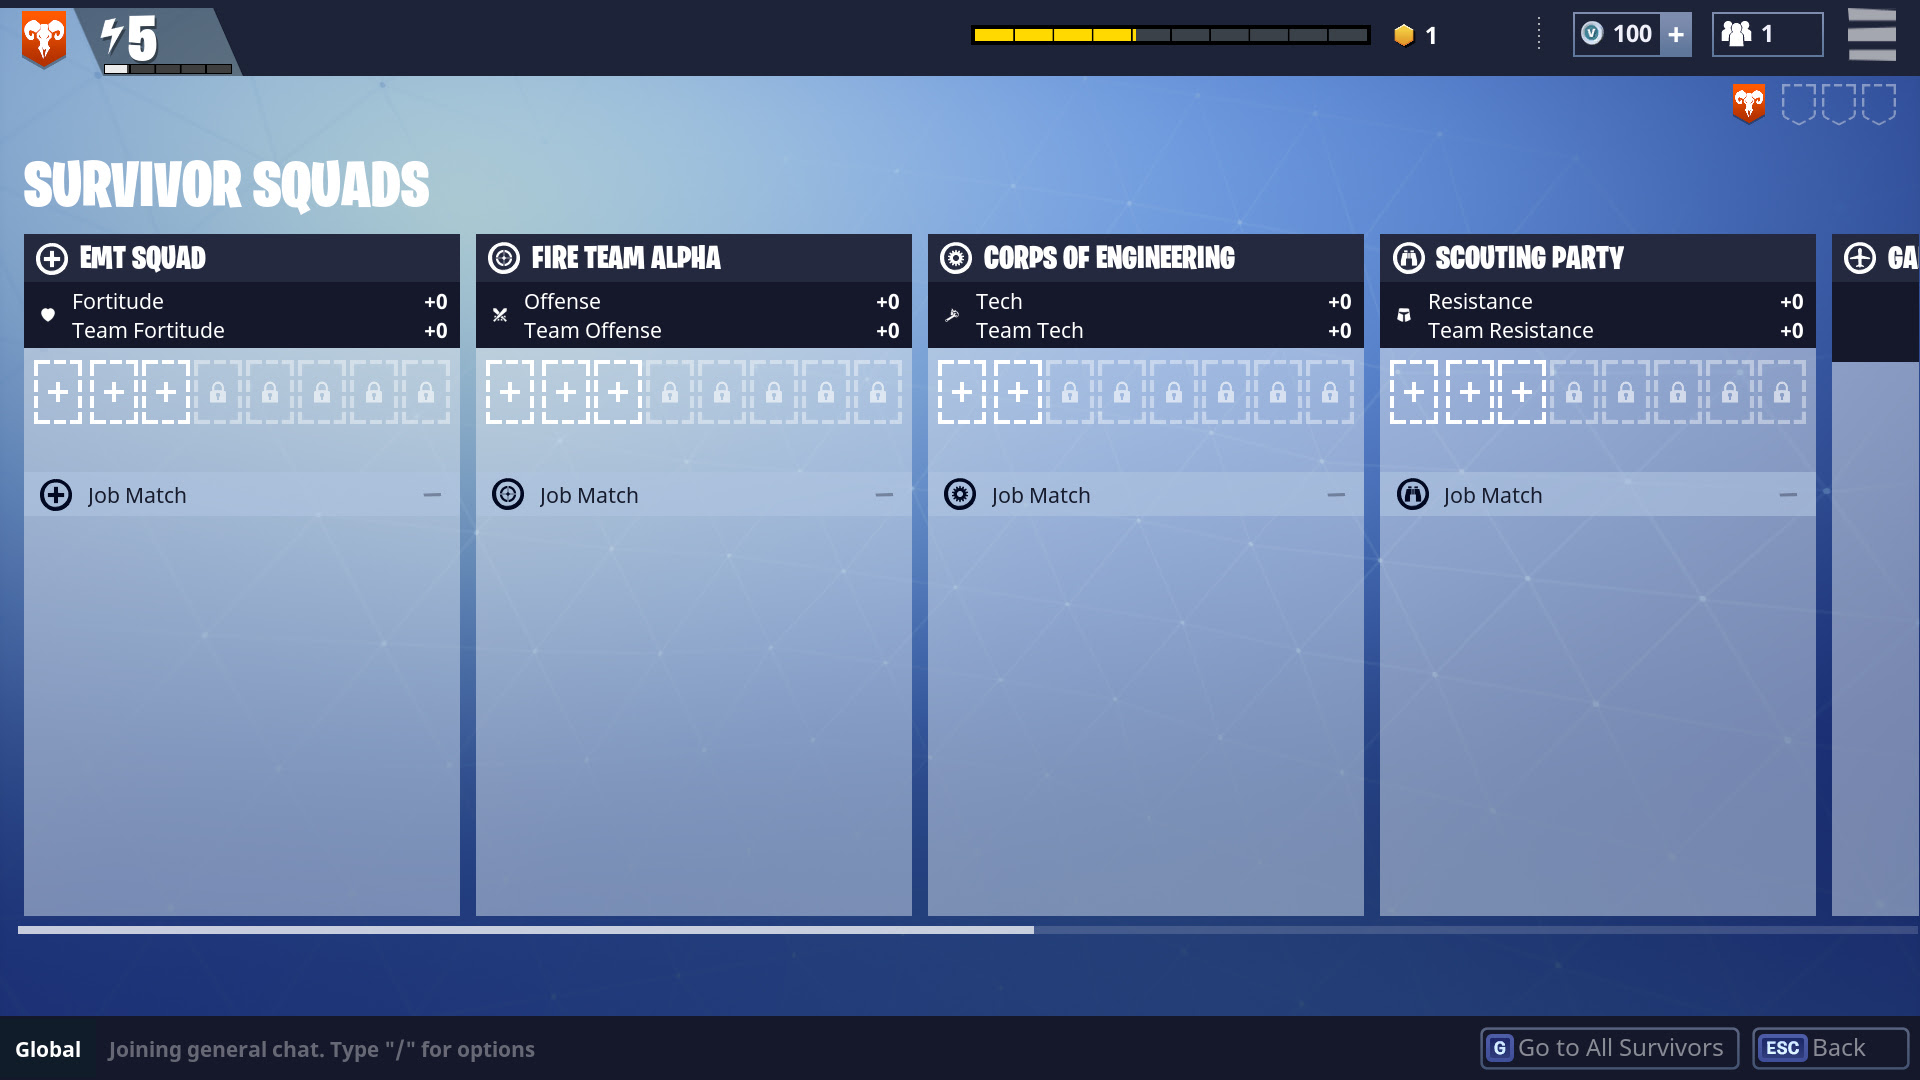 Hero Stats And Squads Explained Fortnite - using the emt squad as and example this will increase our fortitude stat giving us more health to do this we need a lead survivor for the squad